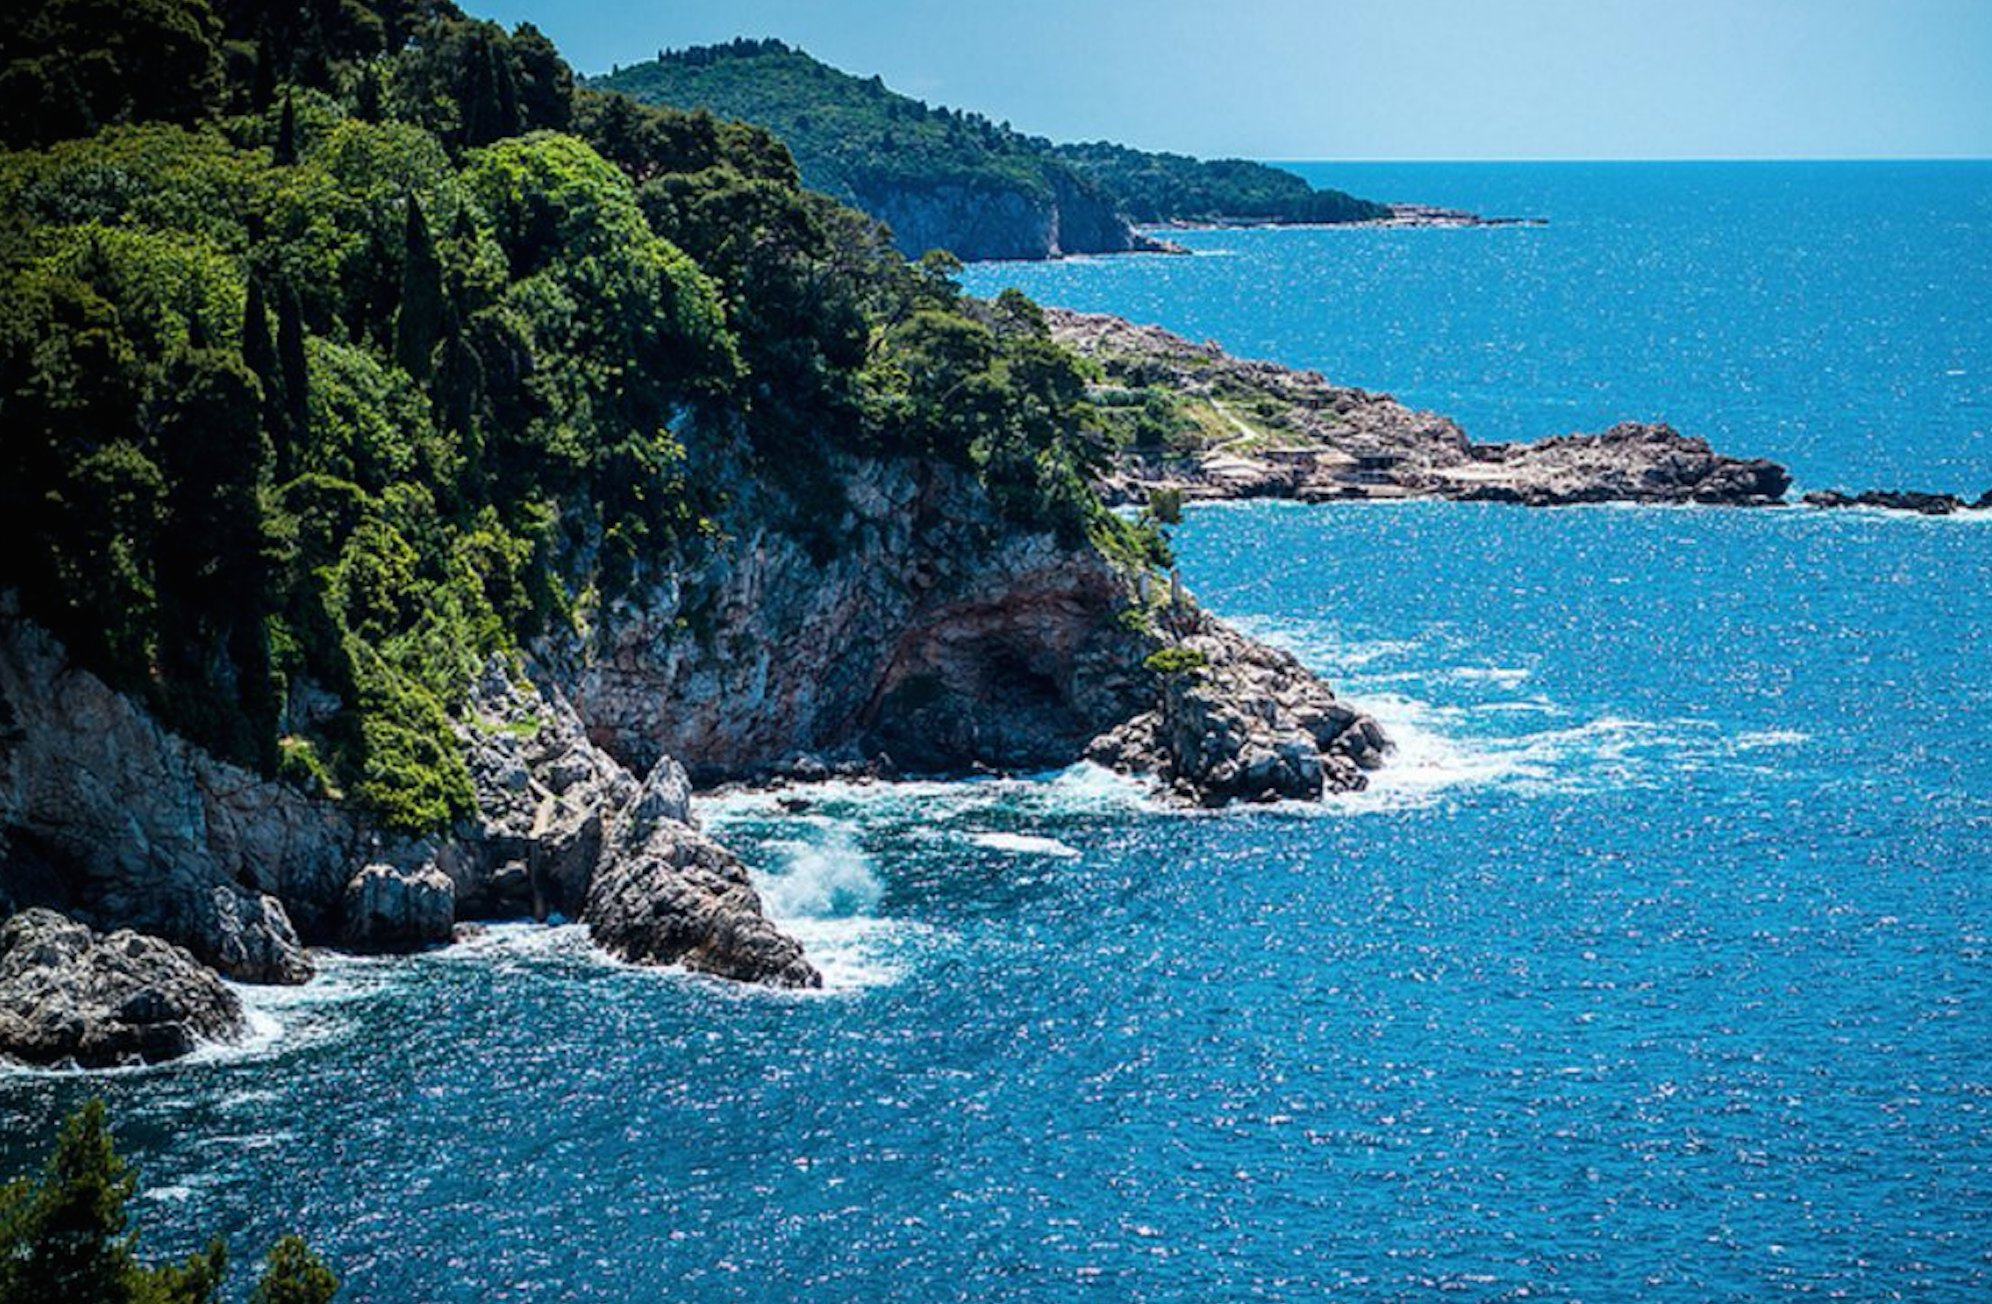 dalmatia-yacht-charter-split-itinerary-route-weekly-7-days-1-week-dubrovink